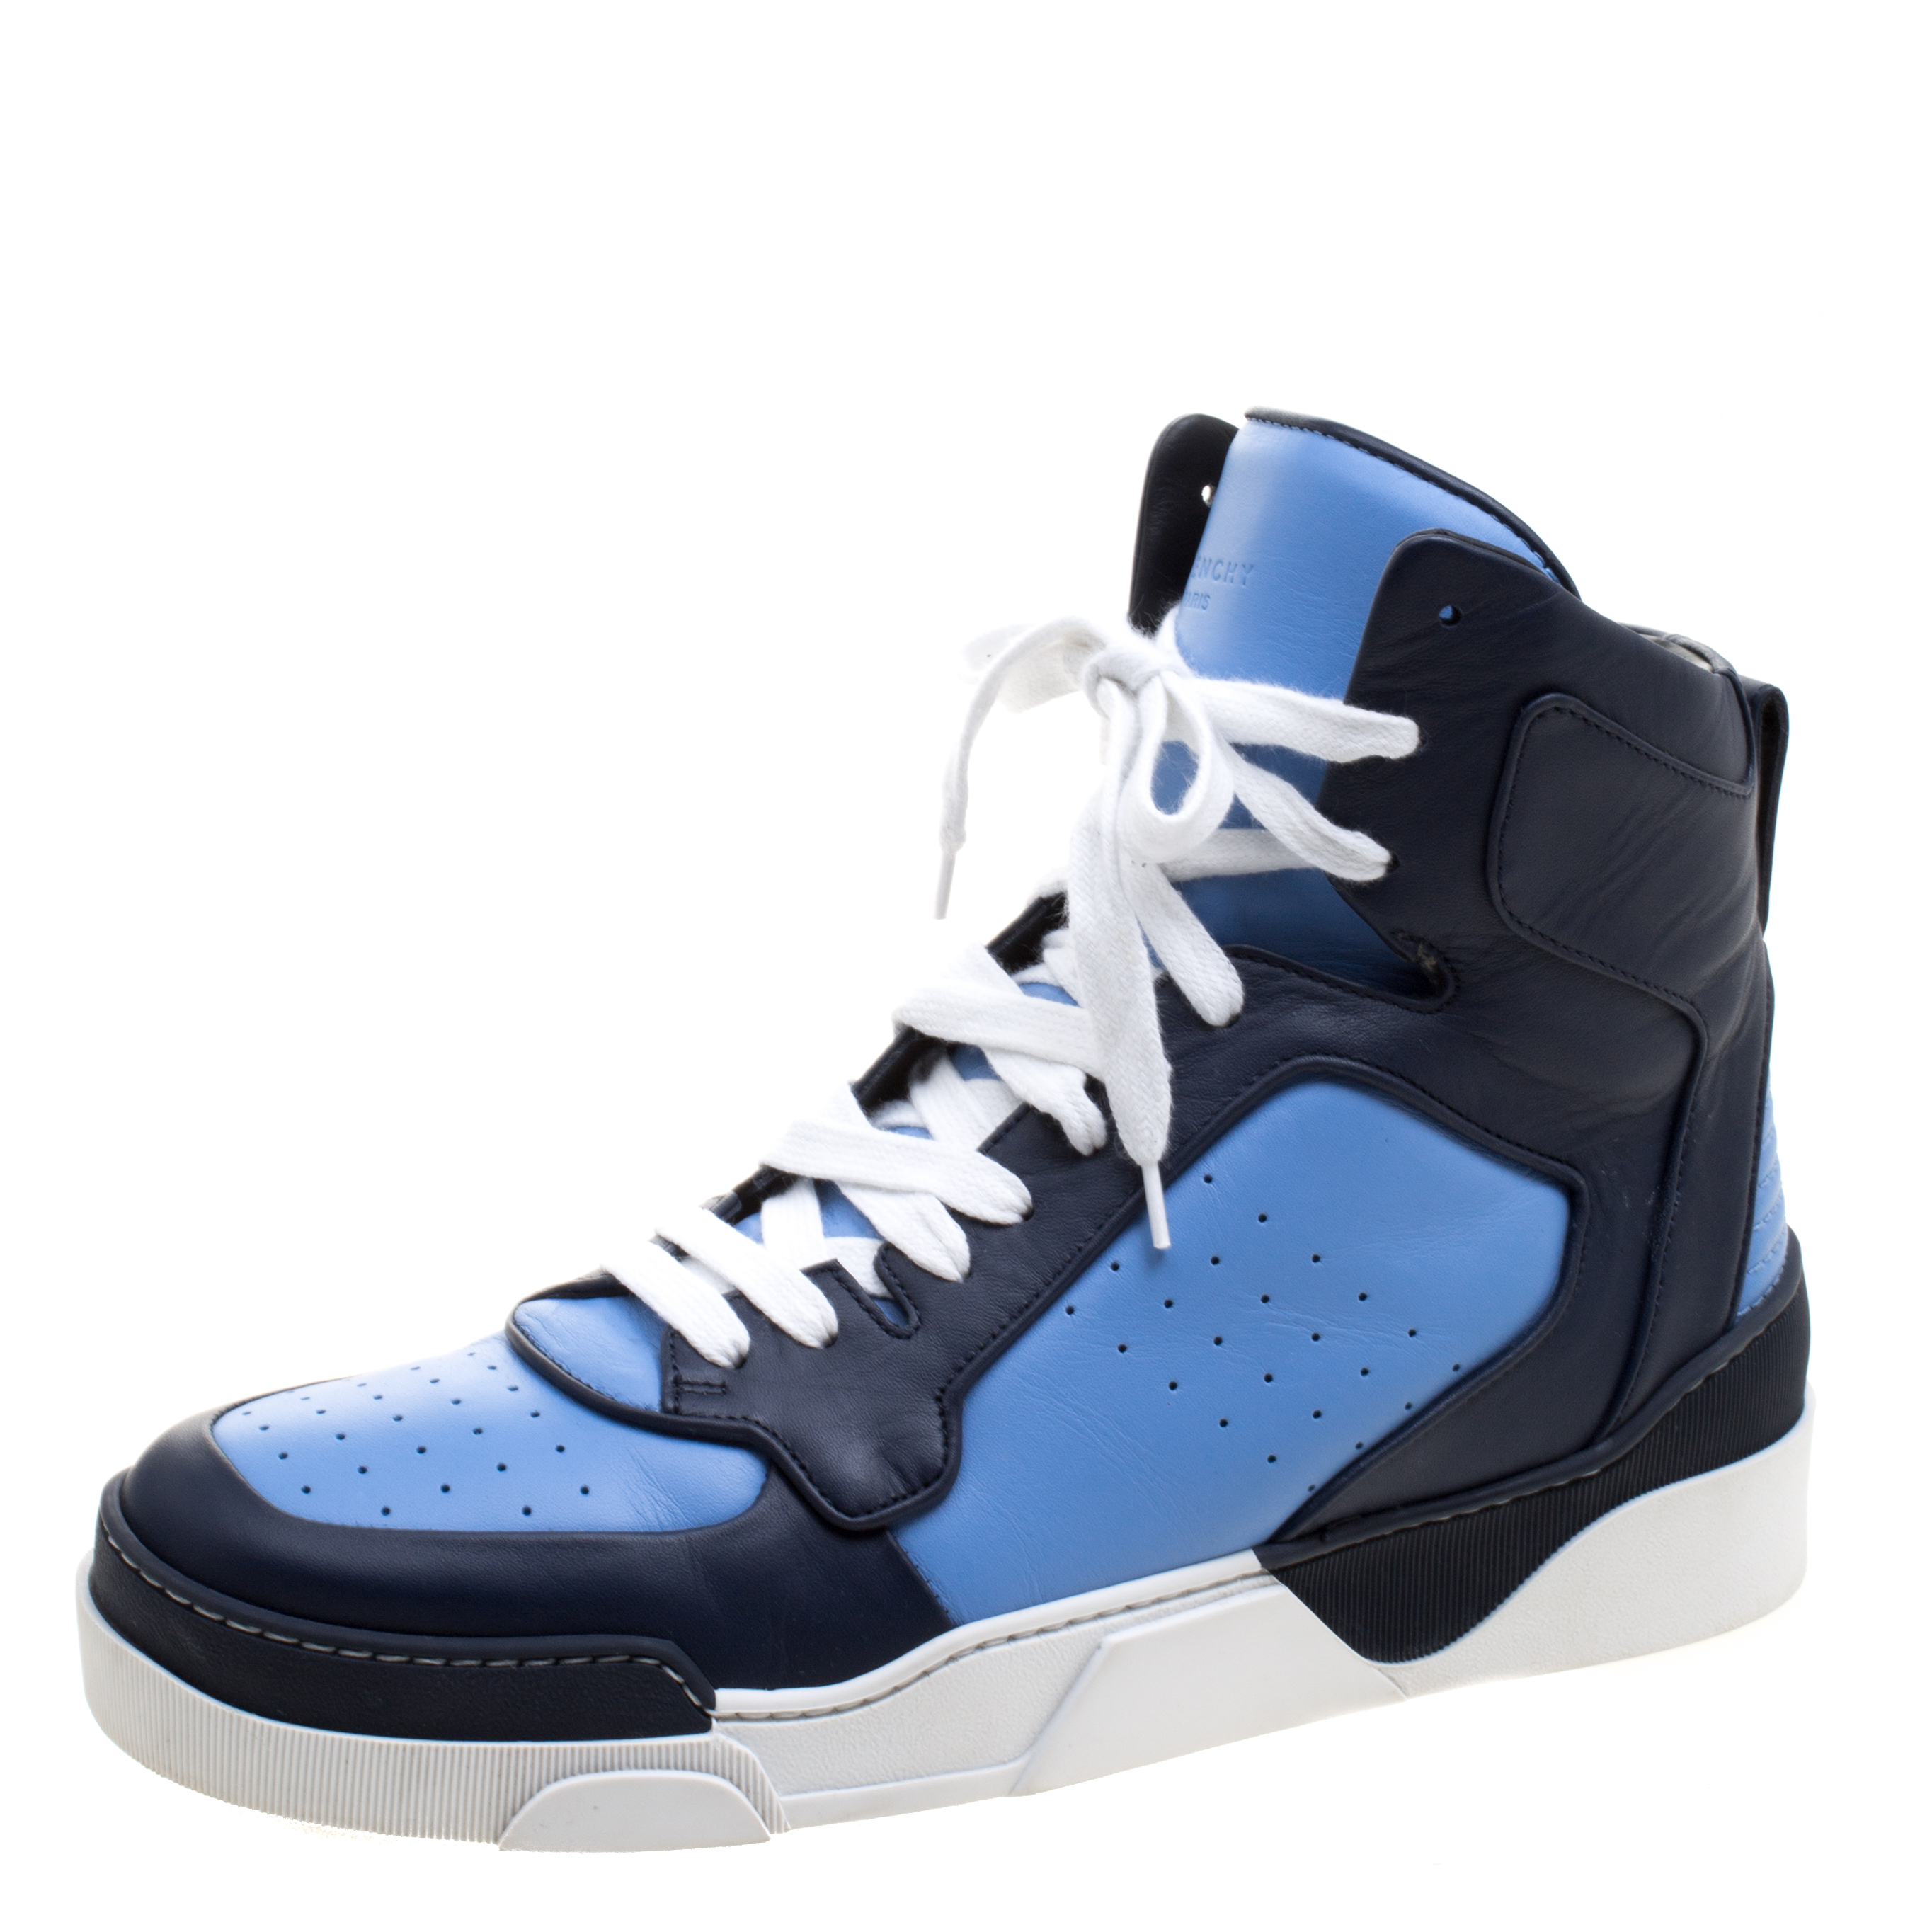 Givenchy Two Tone Leather Tyson High Top Sneakers Size 43